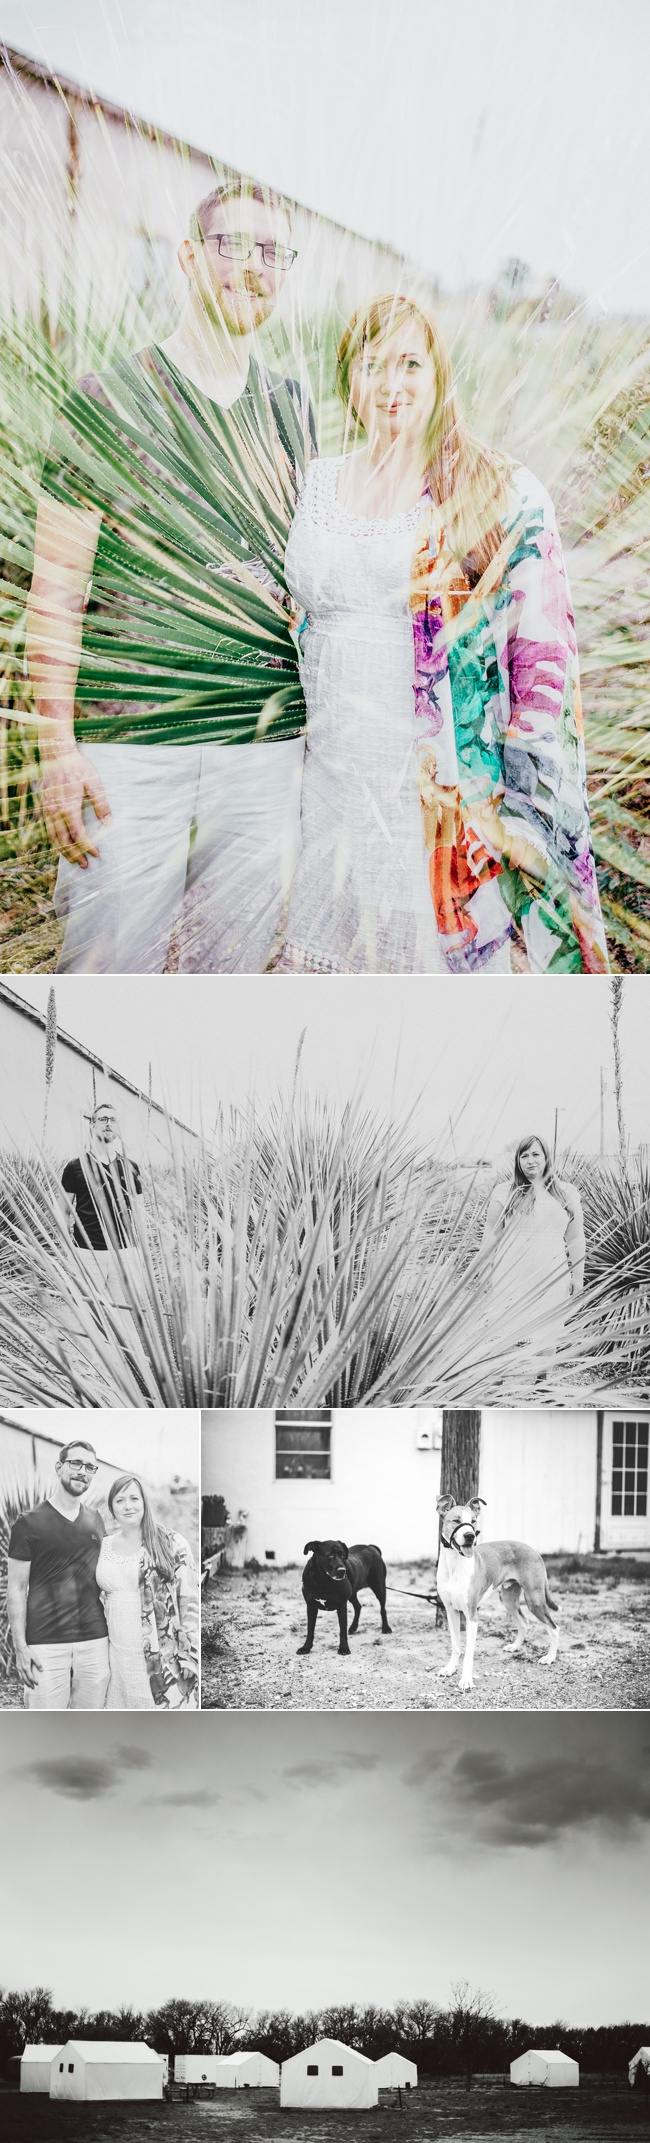 wedding photographers marfa